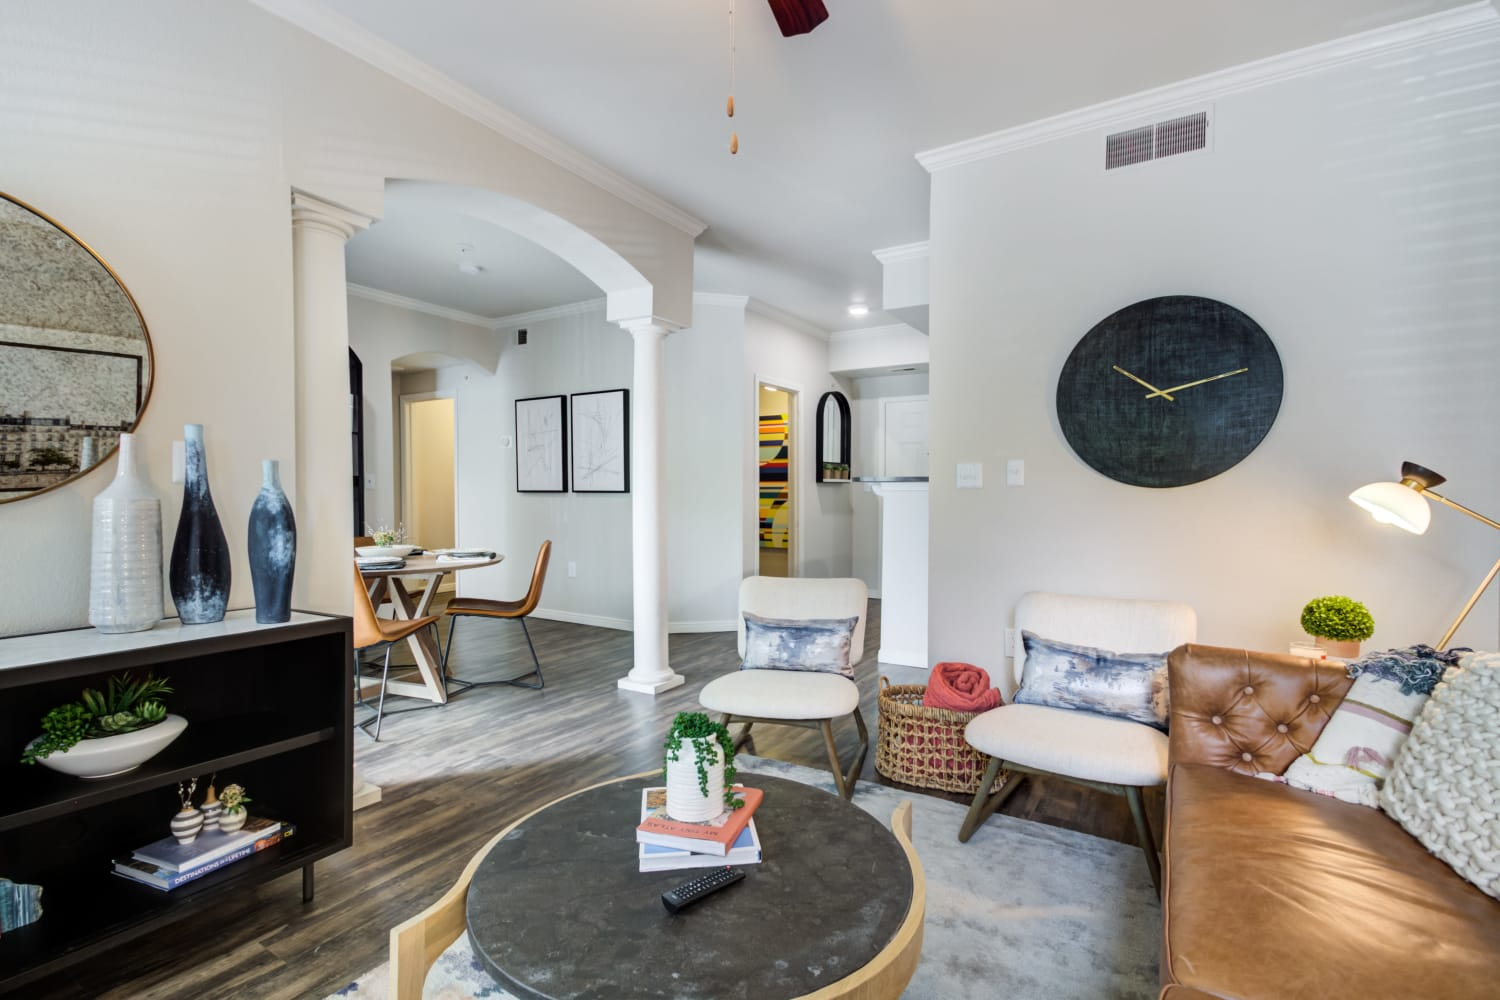 Living room space with couches and other fine furnishings in an apartment at Irving Schoolhouse Apartments in Salt Lake City, Utah